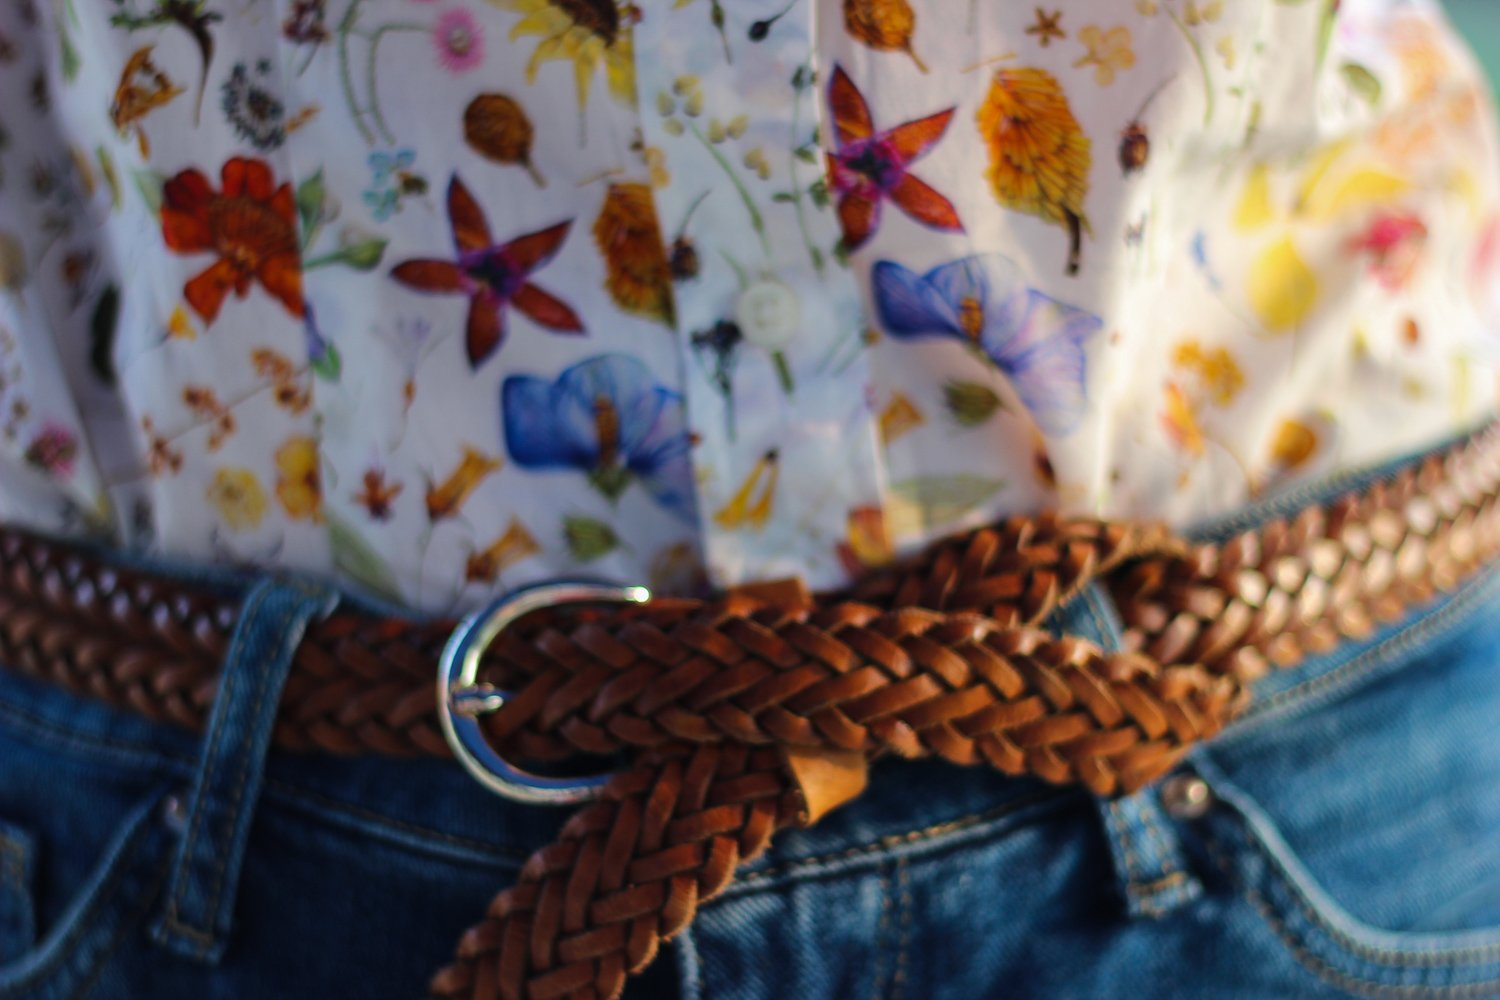 conny-doll-lifestyle: Blumenprint, denim-allover, Herbstlook, Details